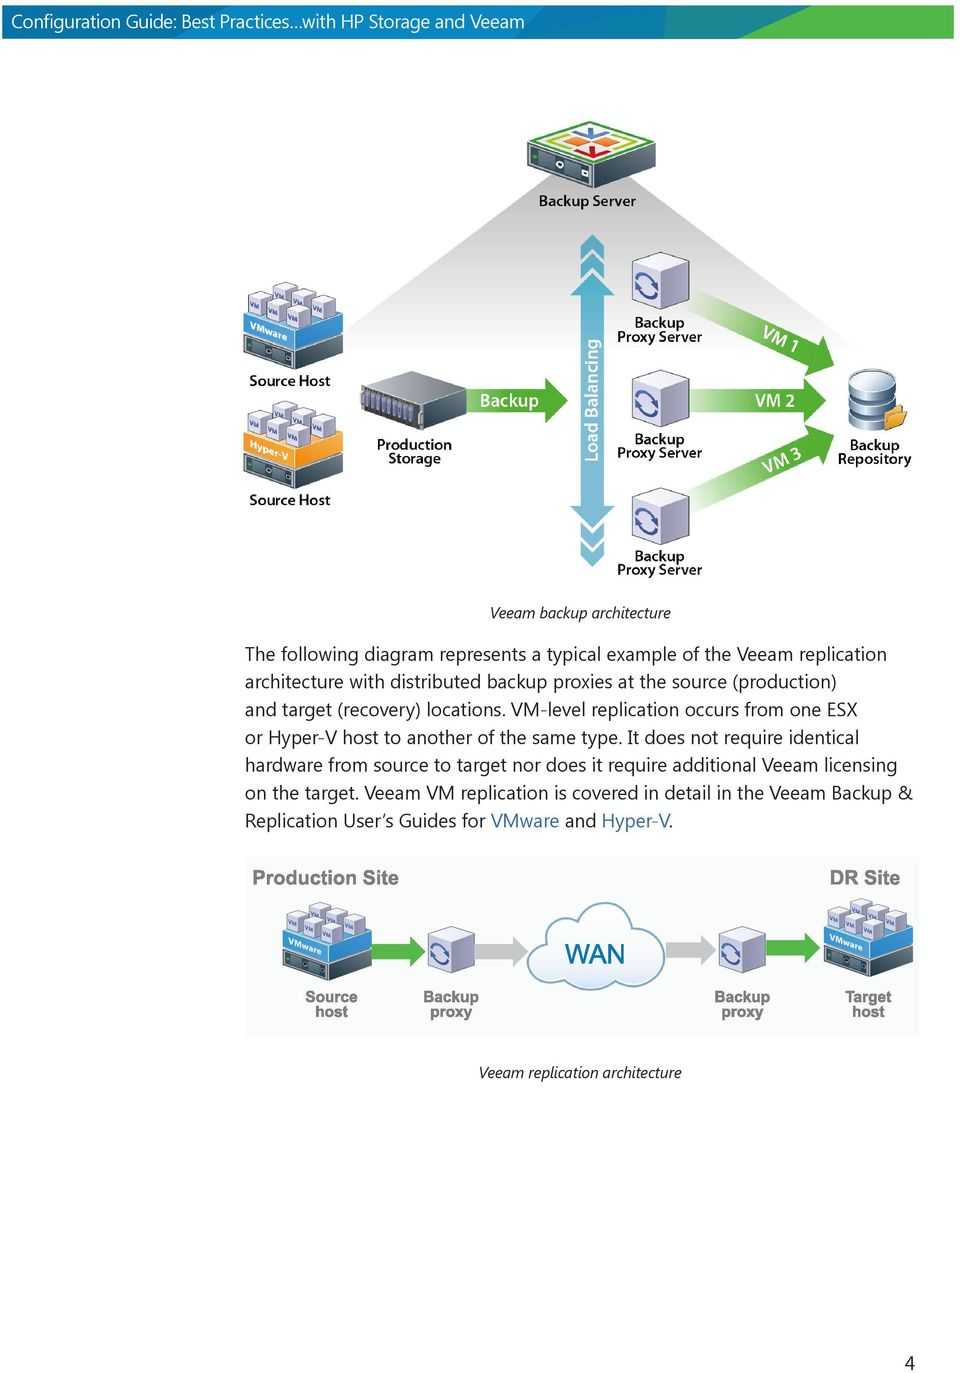 VM-level replication occurs from one ESX or Hyper-V host to another of the same type.